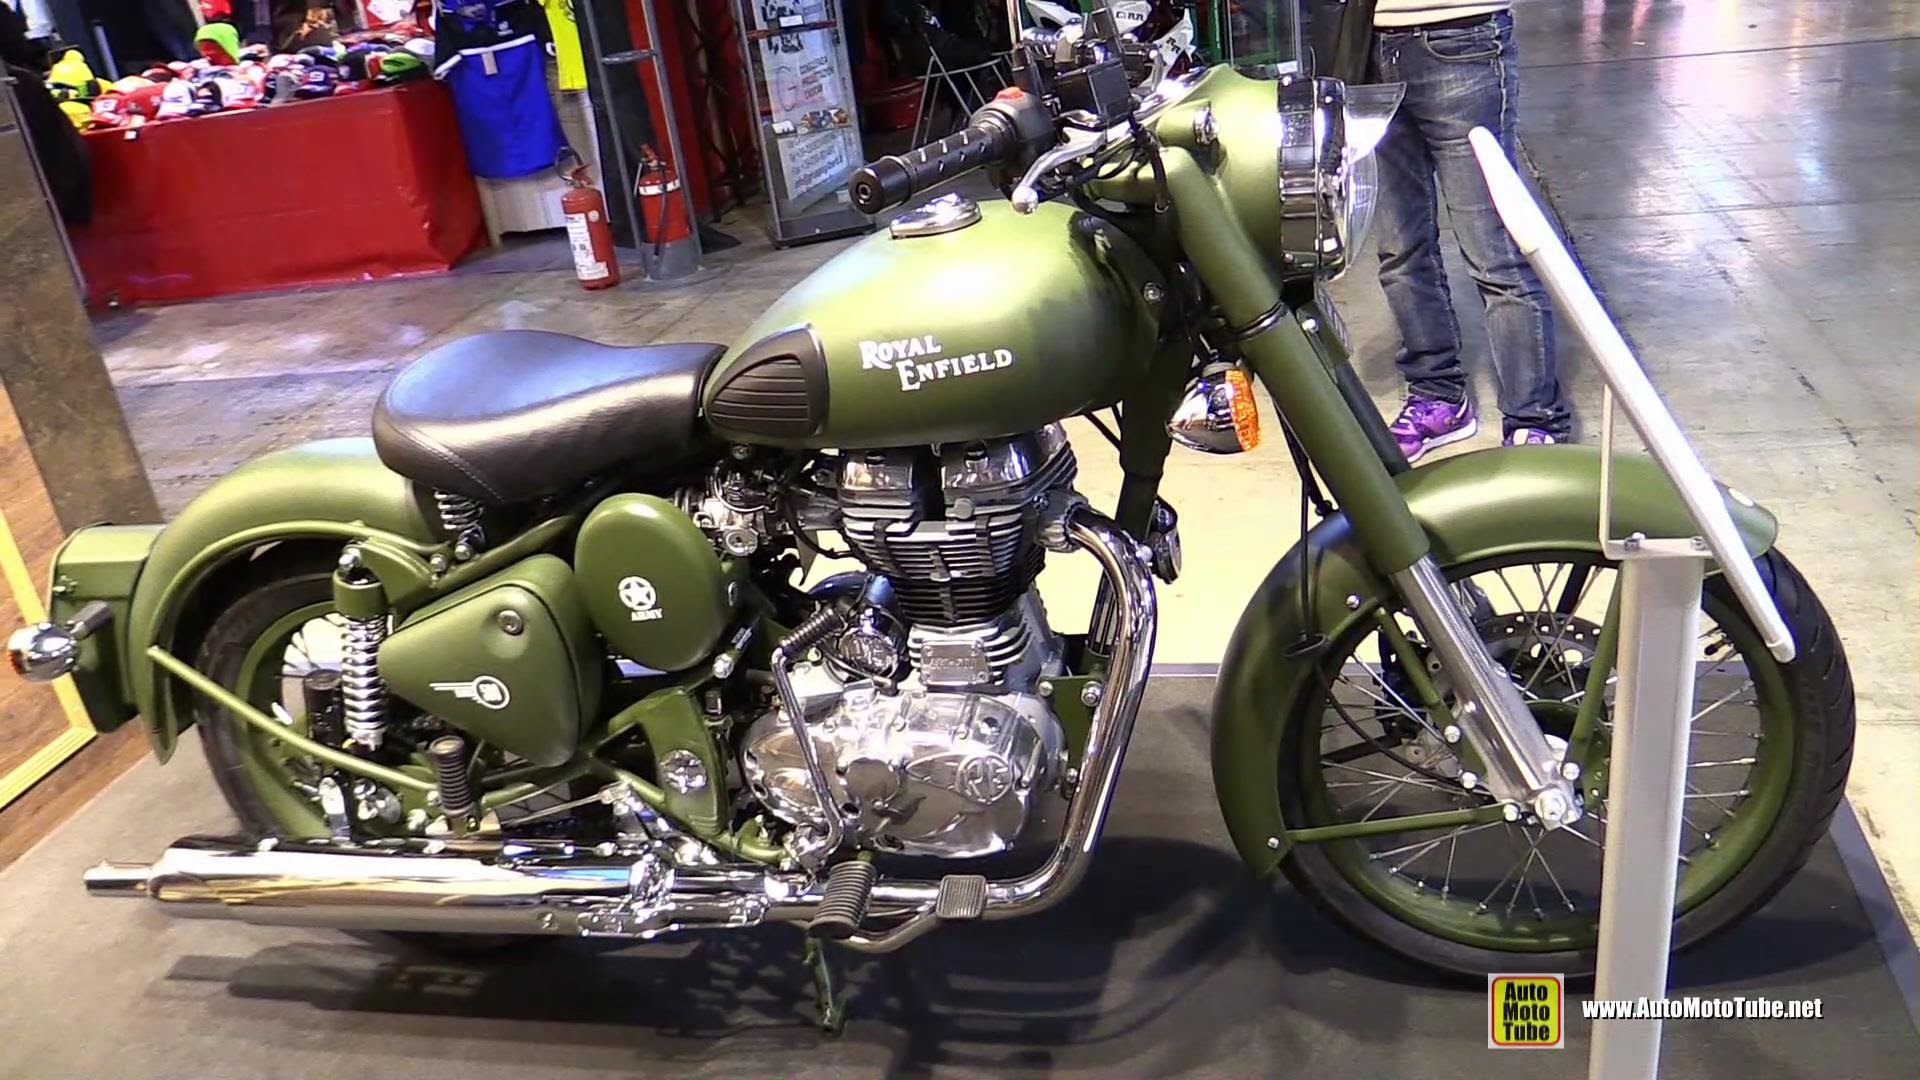 Enfield Military 500 #3